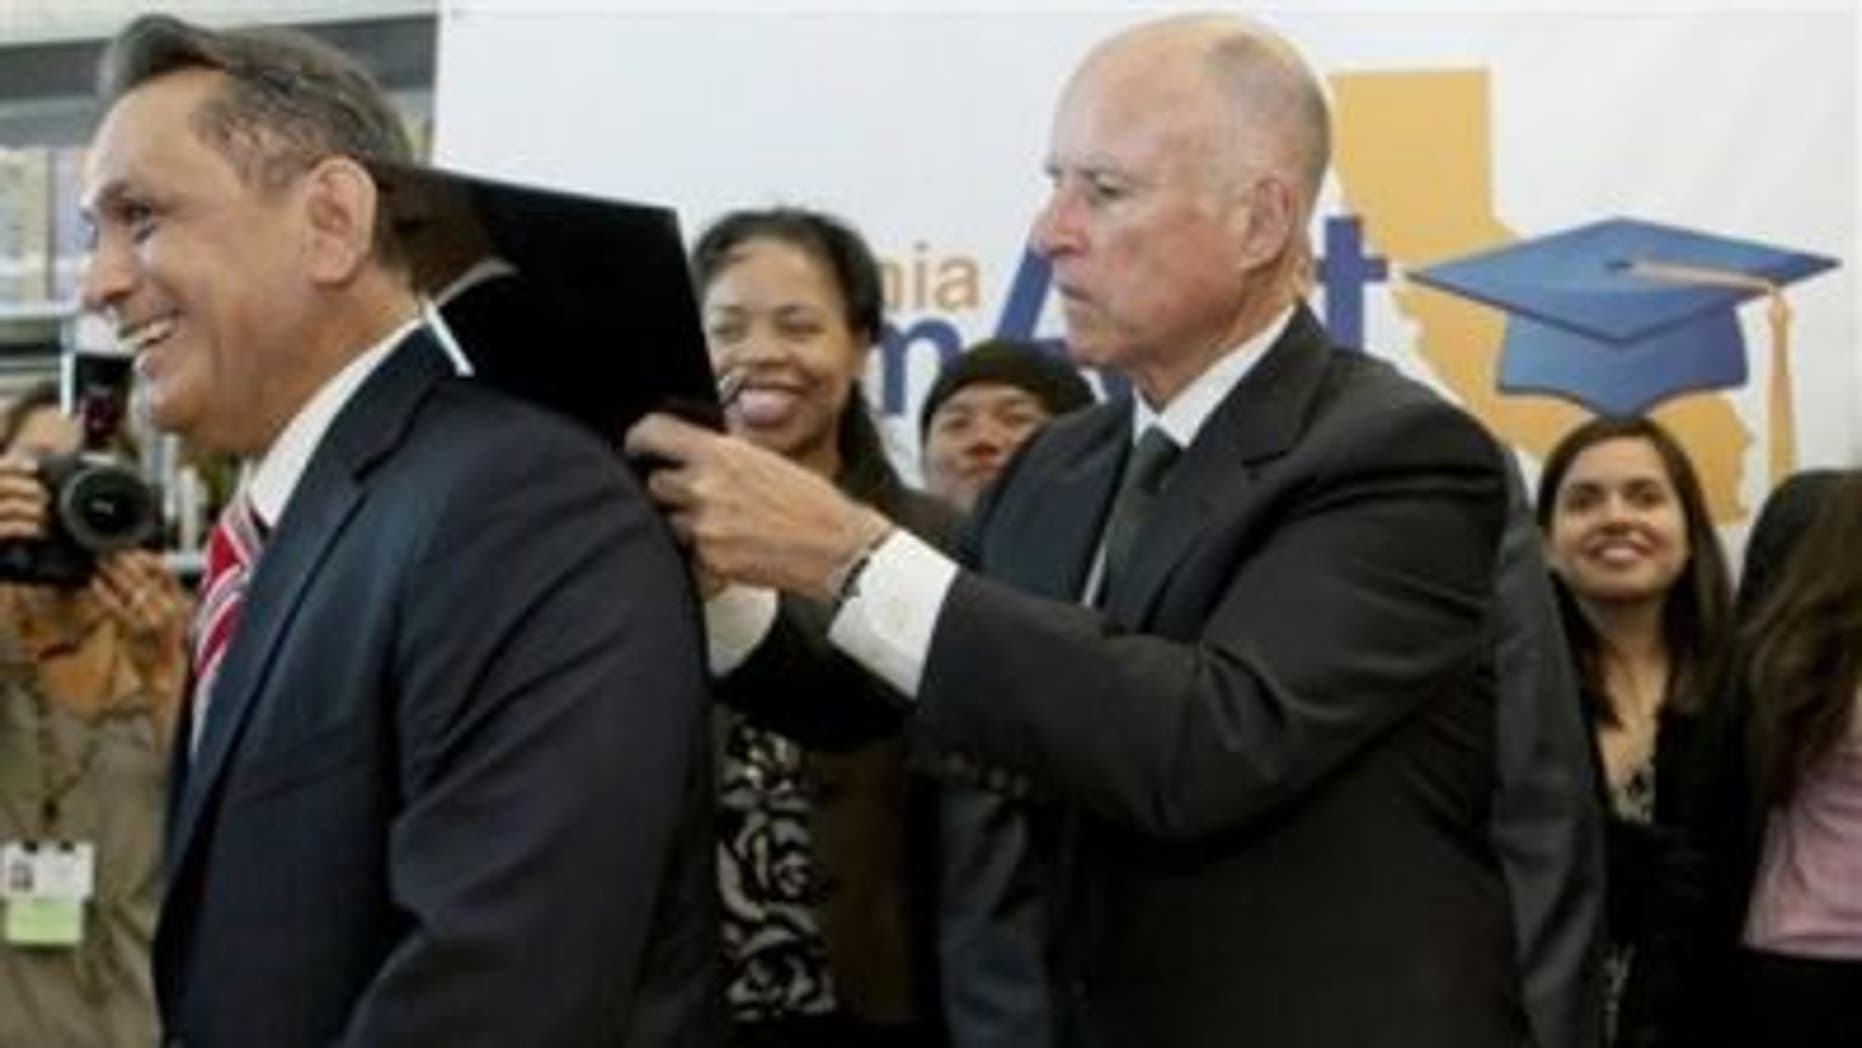 July 25: California Gov. Jerry Brown, right, signs AB 130 Dream Act bill on the back of Assemblyman Gil Cedillo, left, at the Mather Luther King Library at the Los Angeles City College in Los Angeles.